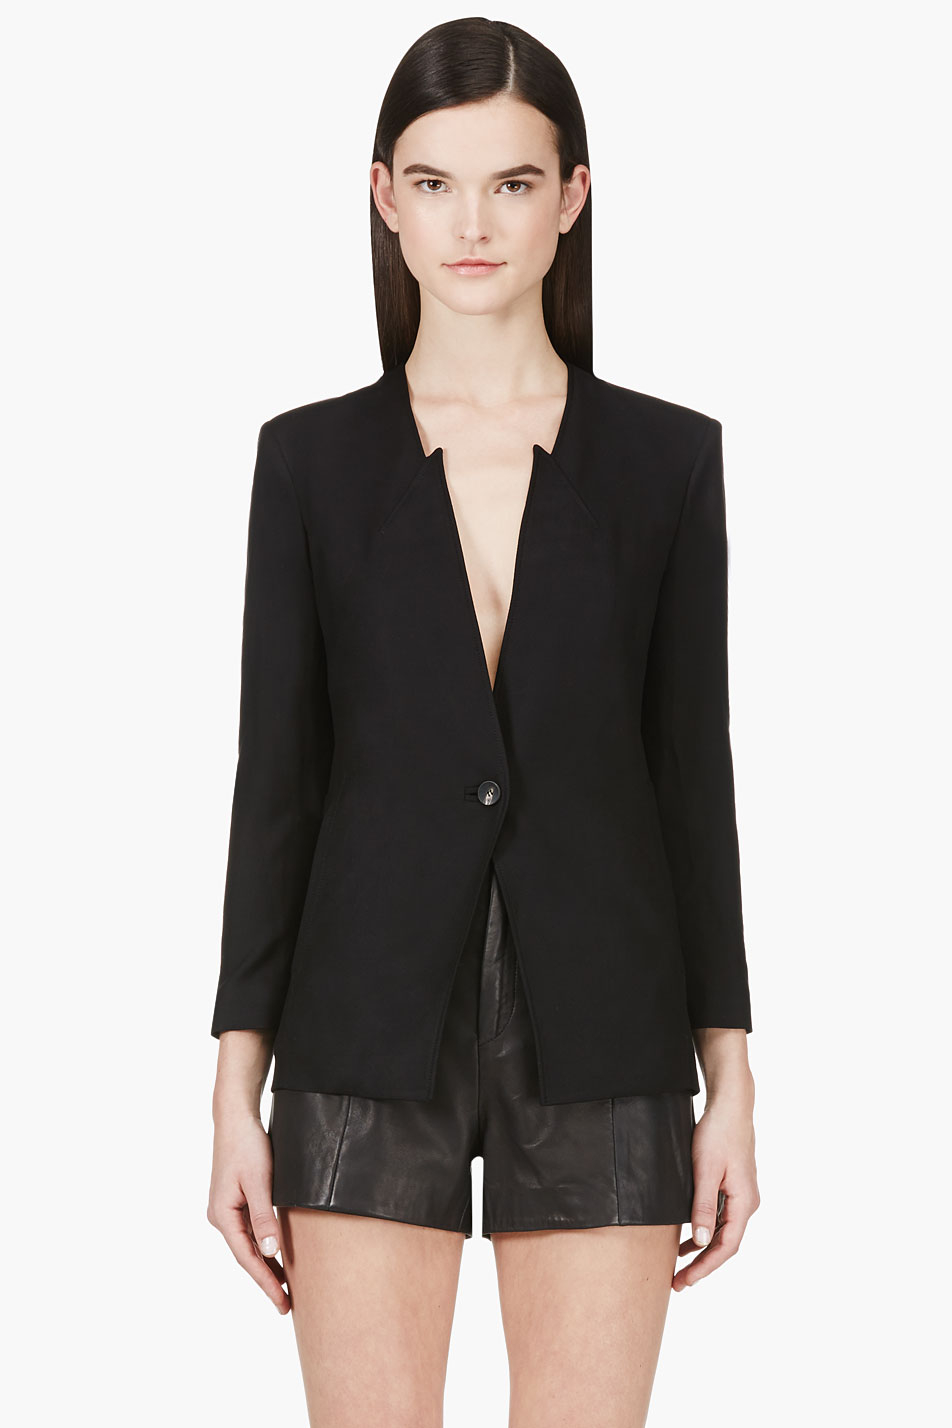 The Bohemian Traders Blazer is updated in this 'Extended' edition - meet a sleek, soft collared silhouette with exotic tassels to the hem. Made from thick sateen, it's detailed with embossed black buttons and lightly padded shoulders that balance the loose shape.